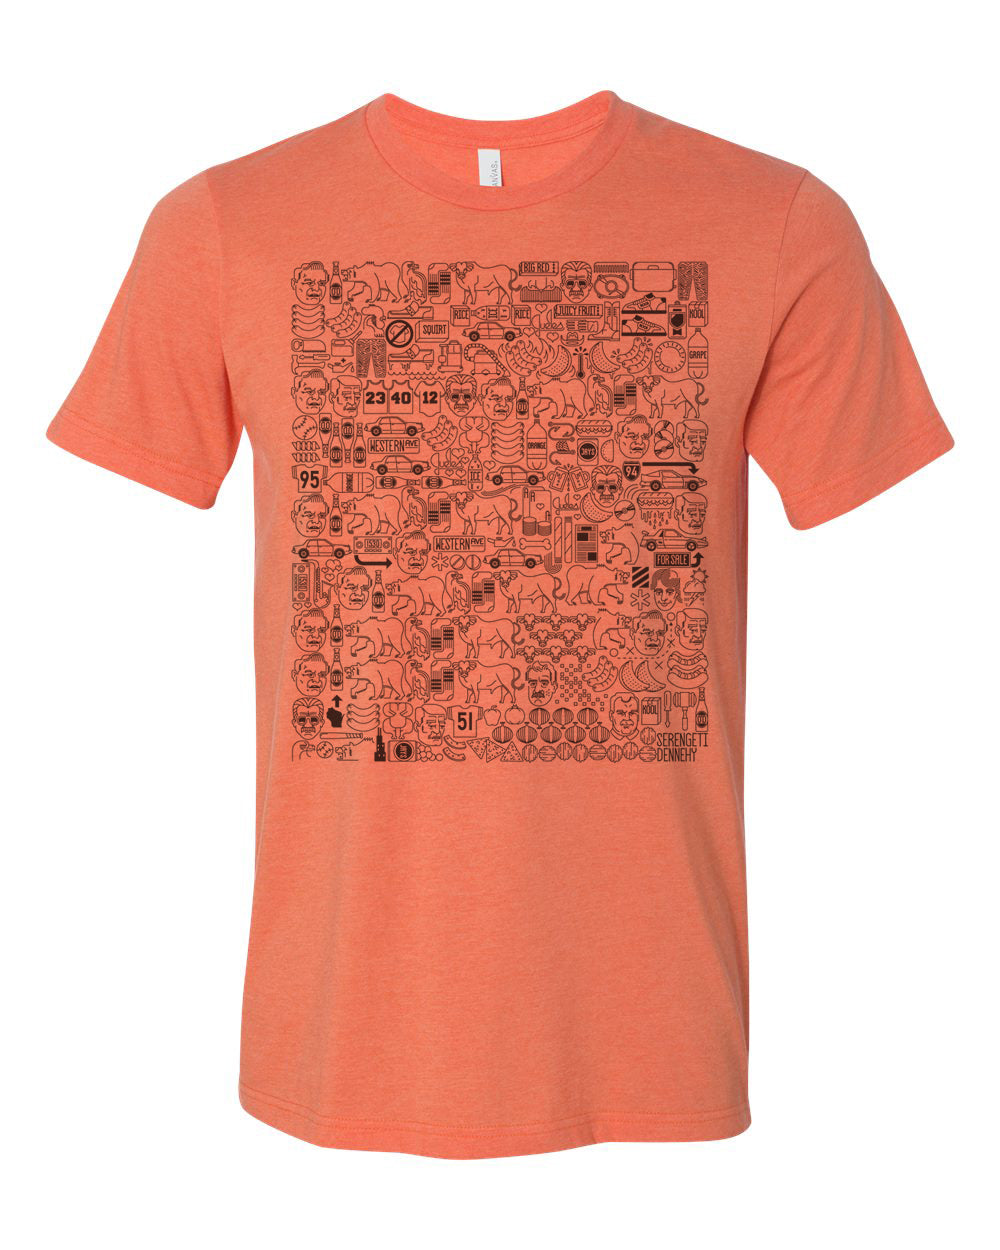 // 7 DAY PRESALE // DENNEHY LYRICS TEE - HEATHER ORANGE